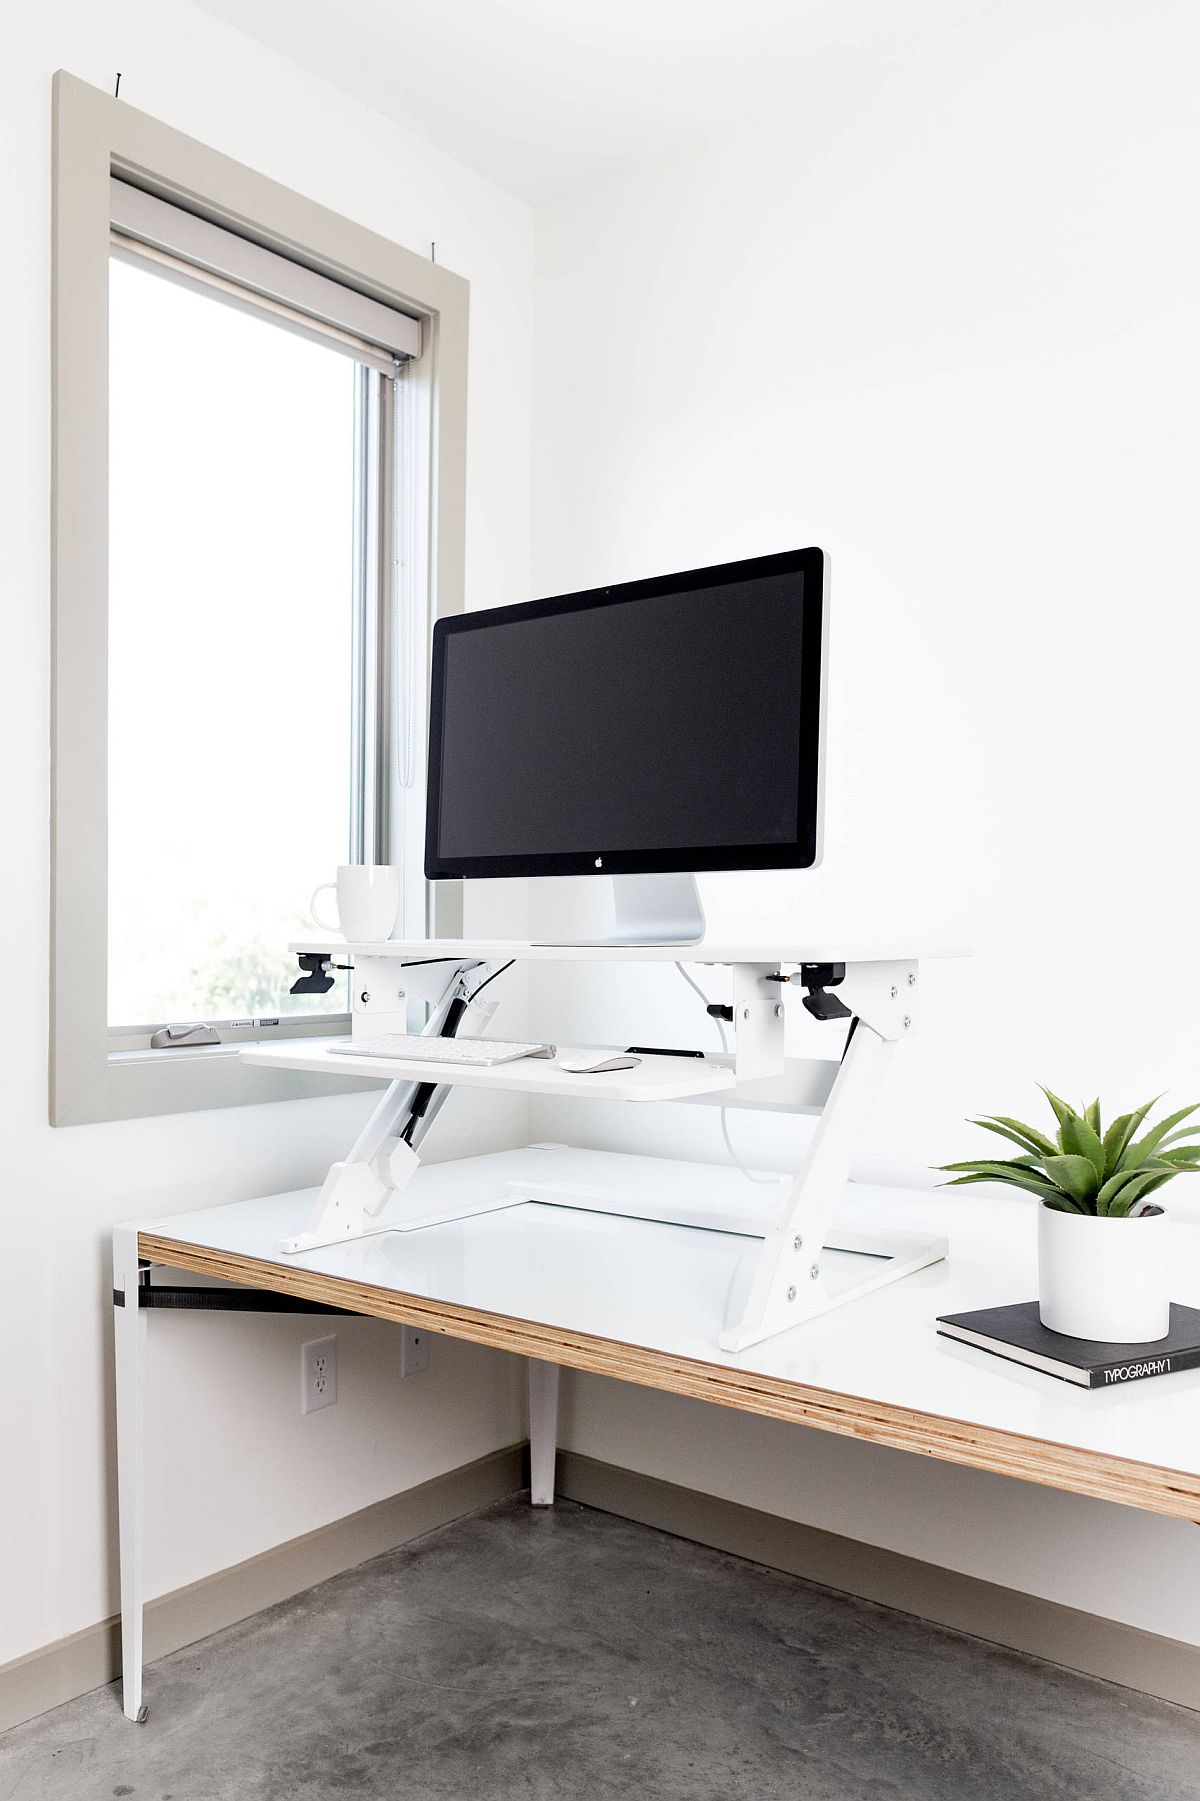 Turn-your-more-traditional-home-office-workstation-into-a-sit-stand-desk-27197